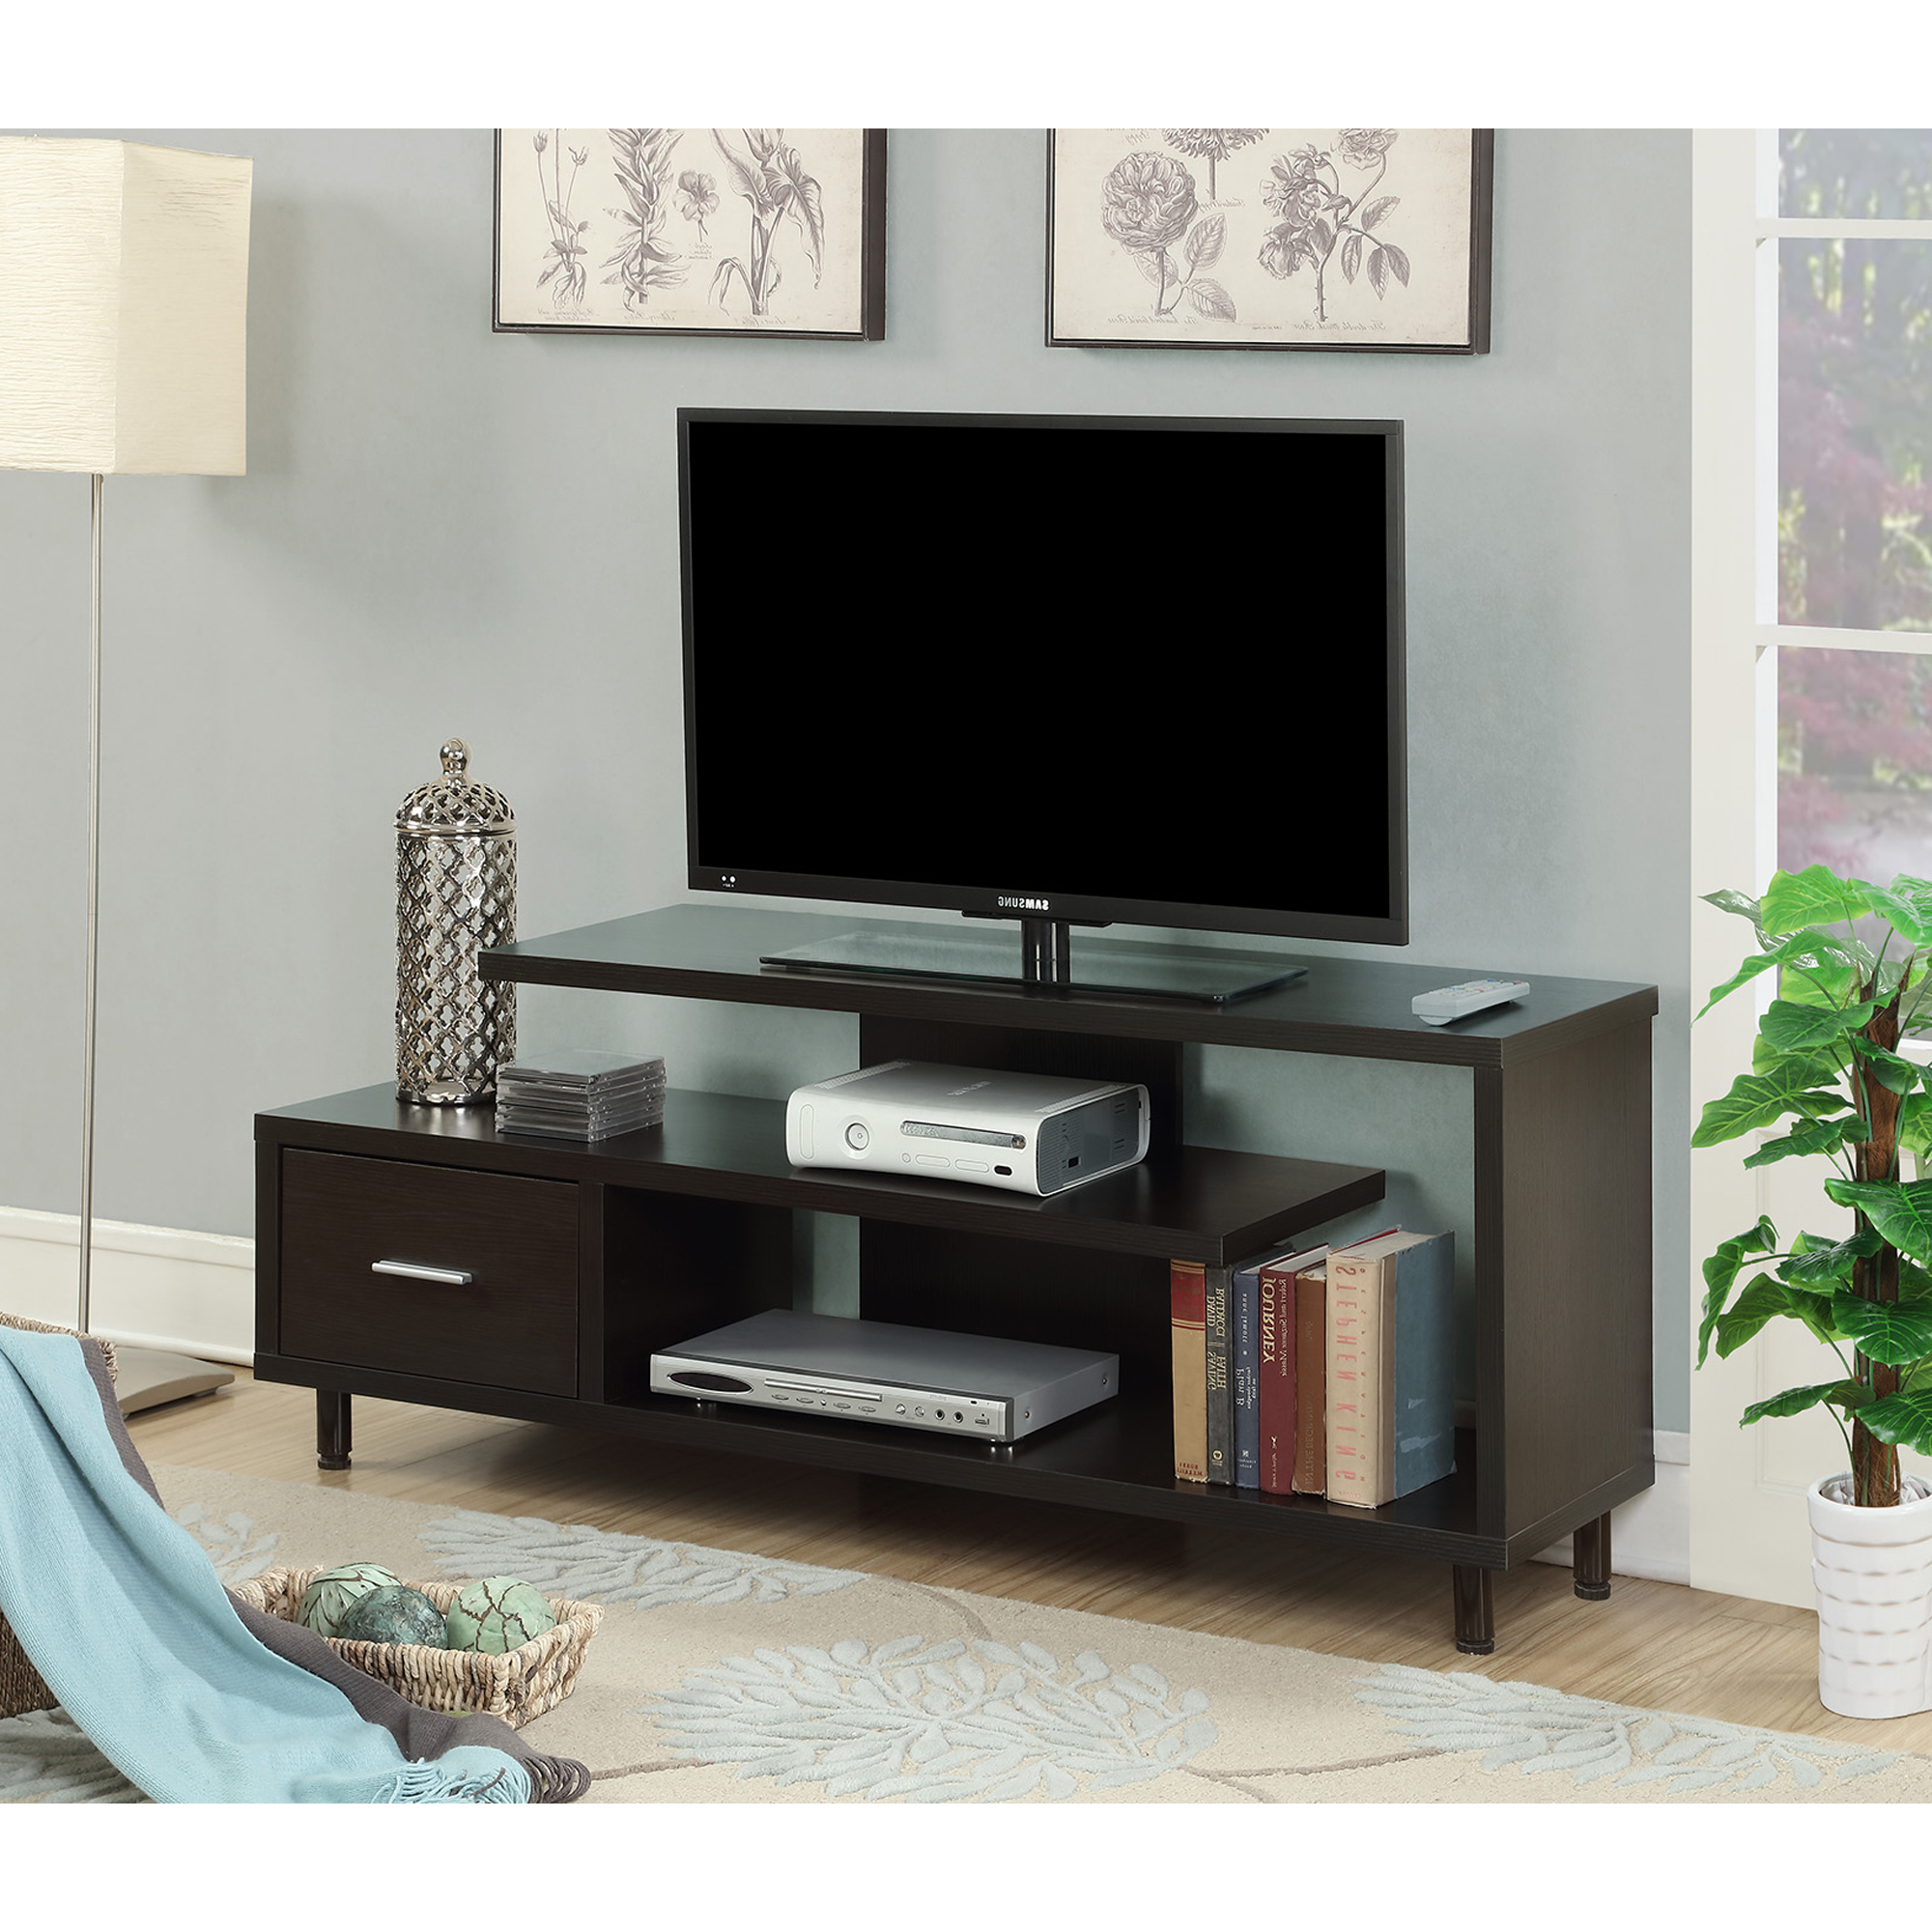 40 Inch Wide Tv Stand 50 Walmart Cheap Stands With Mount 43 Samsung With Regard To Well Known Tv Stands 40 Inches Wide (Gallery 14 of 20)